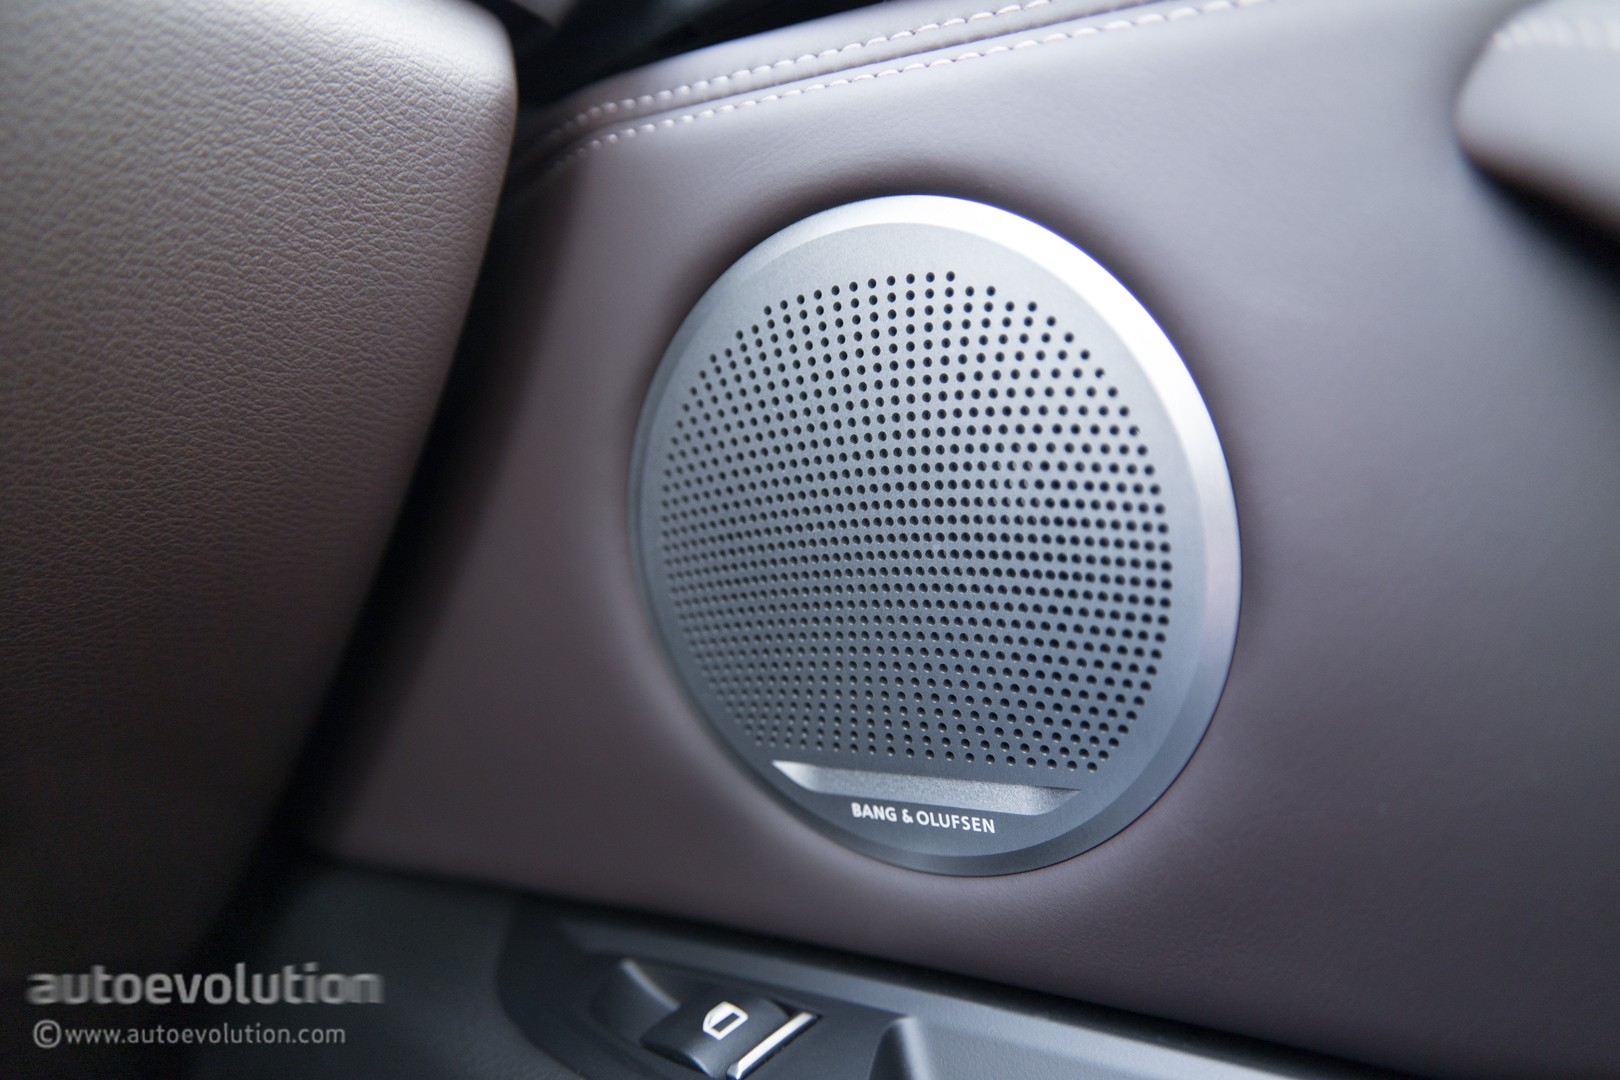 Bang Amp Olufsen S Automotive Branch Was Just Bought By